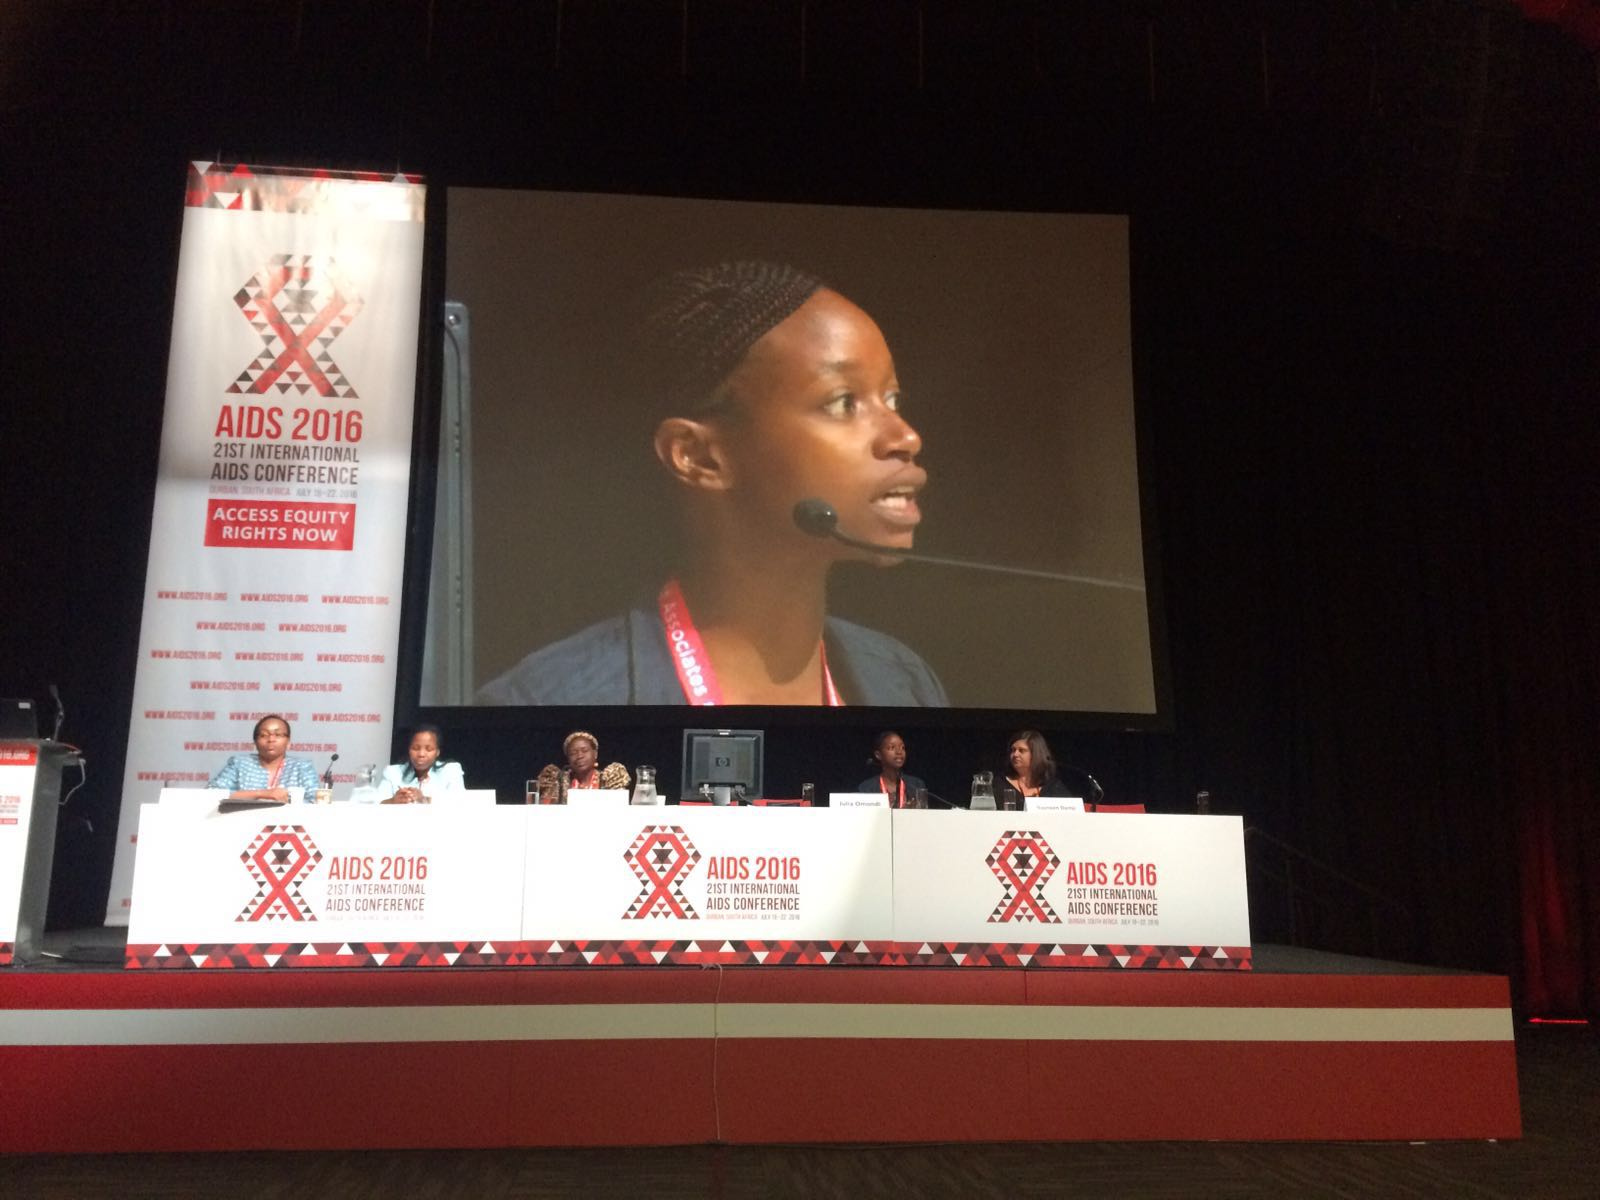 Panelists at the conference during sessions on GBV and HIV